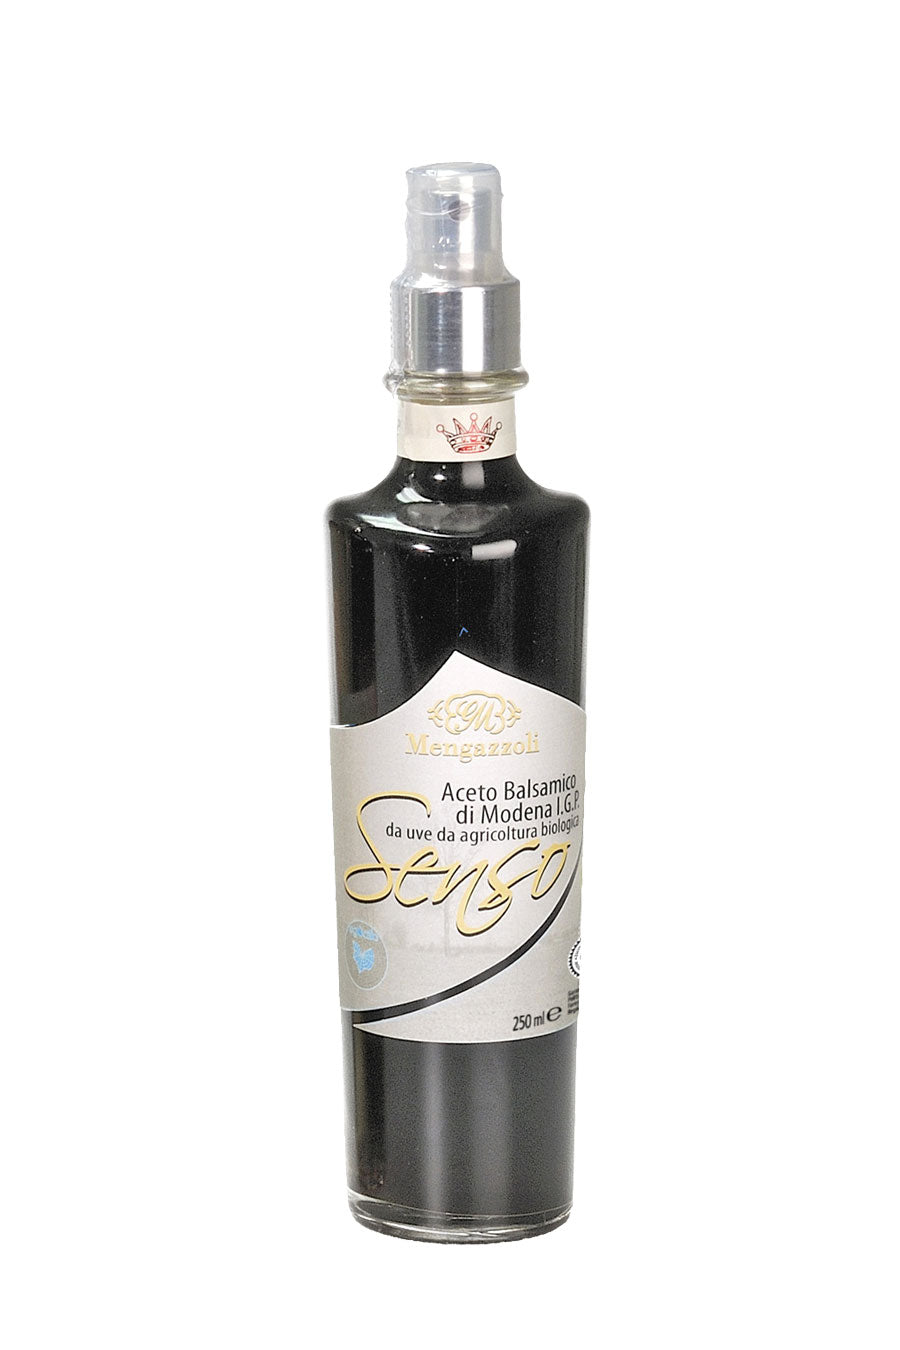 Mengazzoli Organic Balsamic of Modena I.G.P. spray 250ml - Agrumia